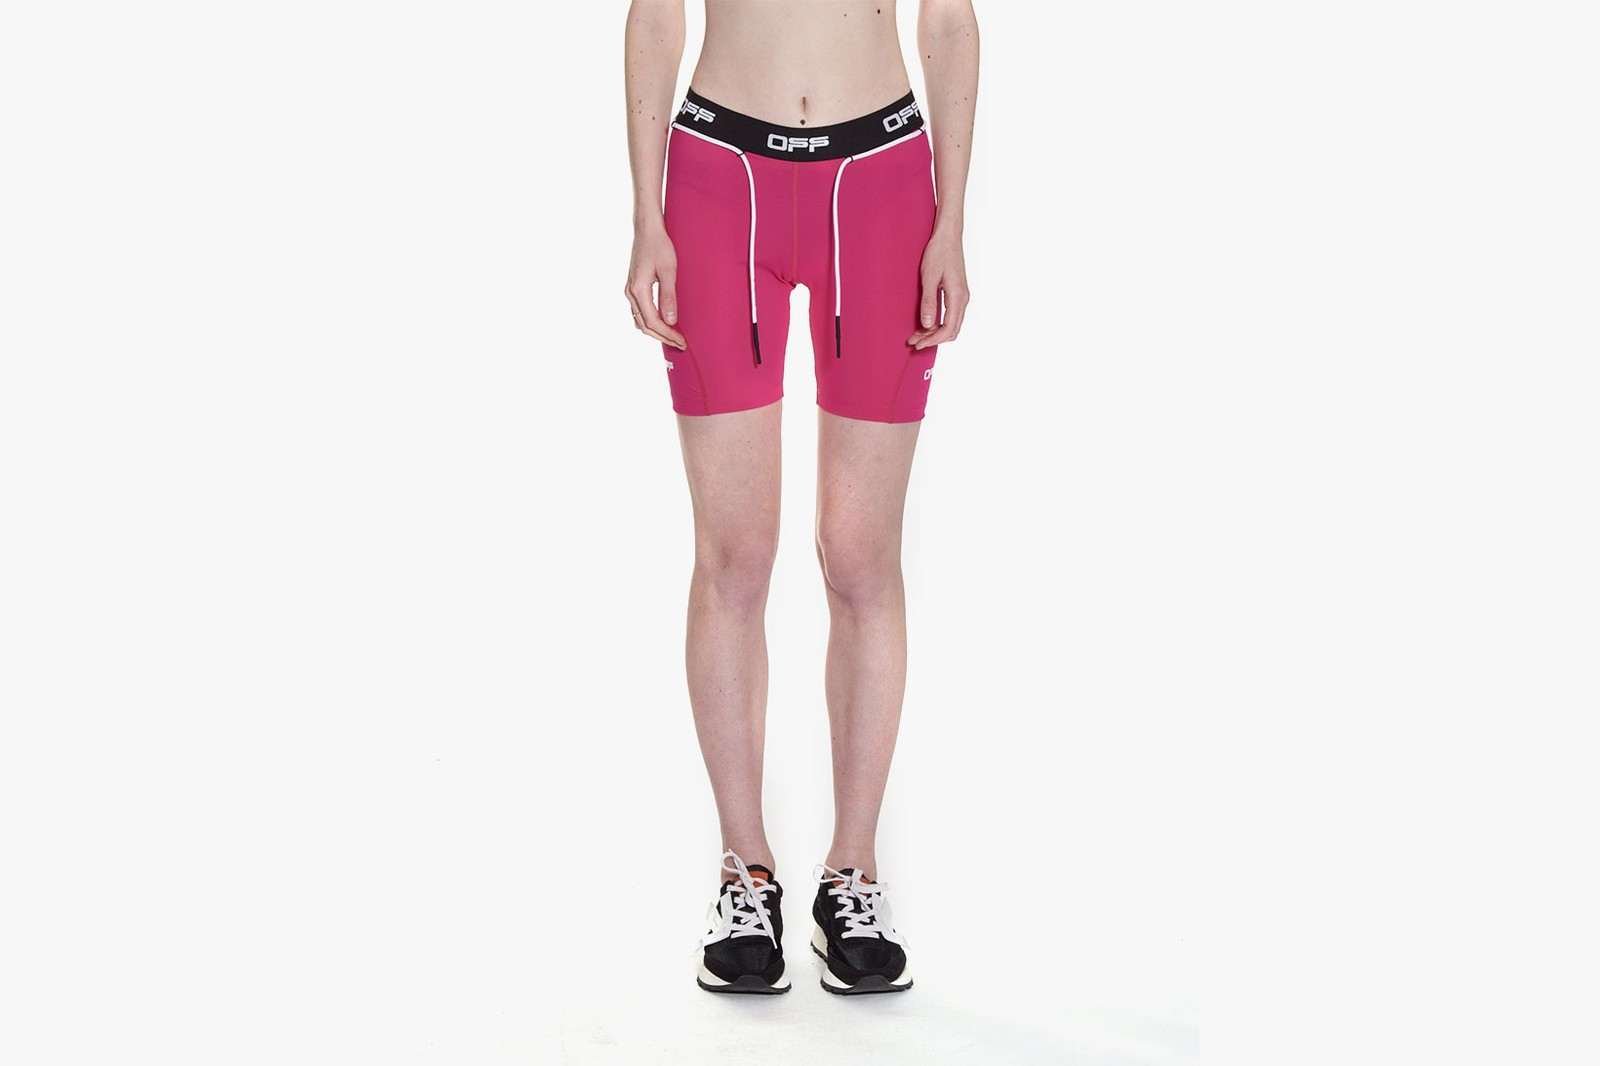 off-white activewear virgil abloh sports bras cycling shorts leggings release info